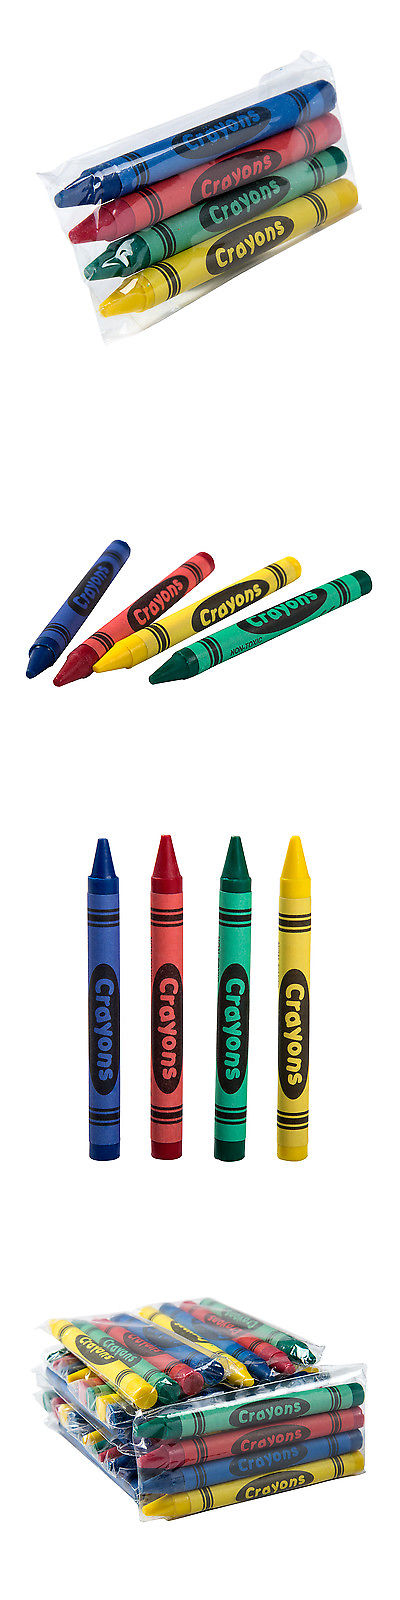 crayons 116653 4 color pack kids fun restaurant cello wrapped